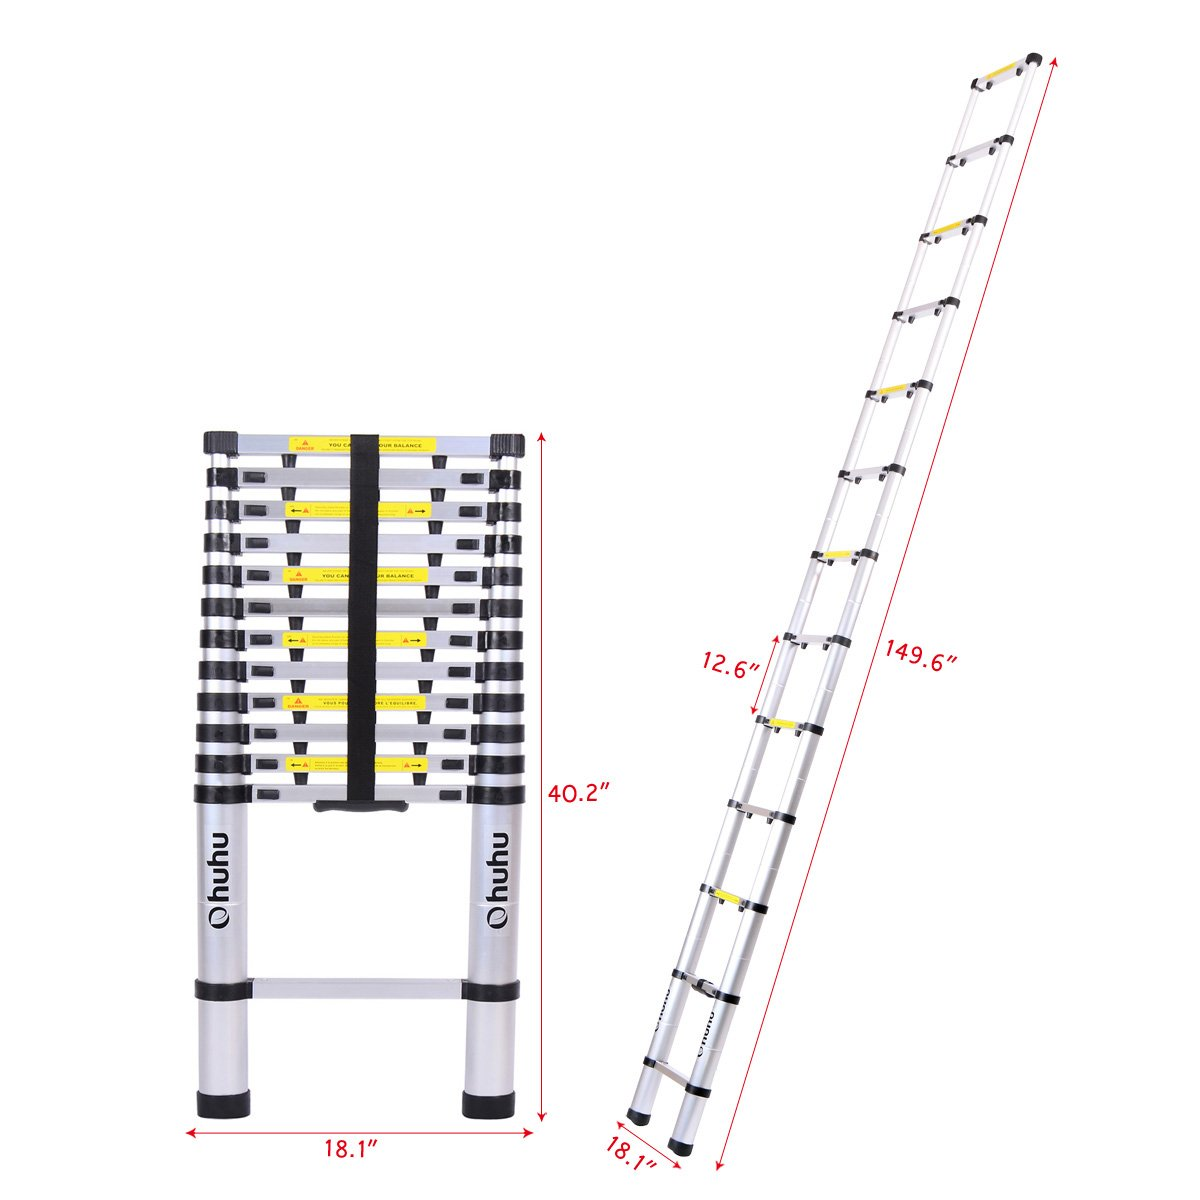 Ohuhu 12.5ft Aluminum Telescopic Extension Ladder, EN131 Certified Extendable Telescoping Ladder with Spring Loaded Locking Mechanism Non-slip Ribbing 330 Pound Capacity by Ohuhu (Image #6)